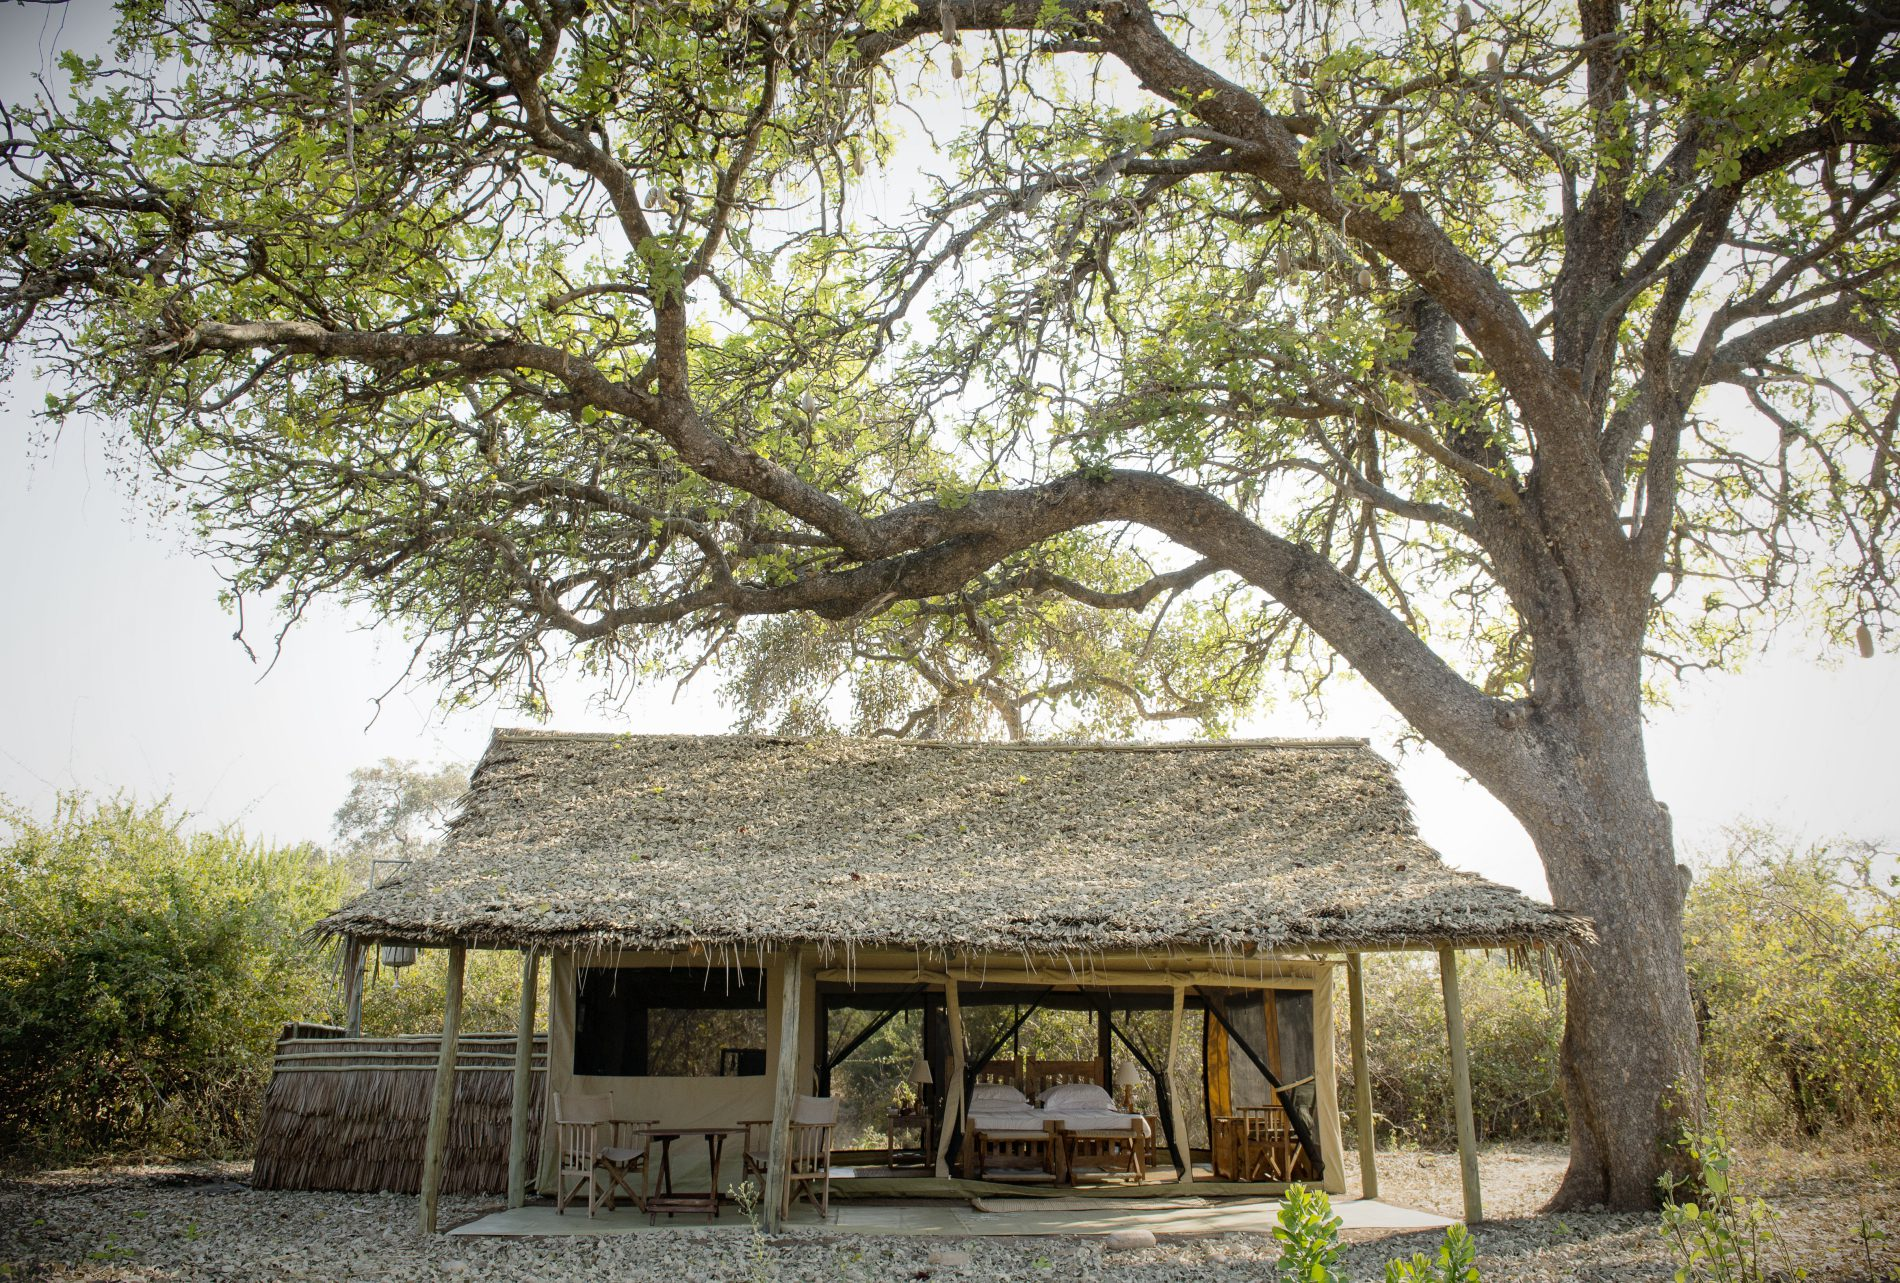 the broad branches of a tree shade a sunny, open-air suite at Kigelia Ruaha featuring a bed, a seating area, and a grass roof